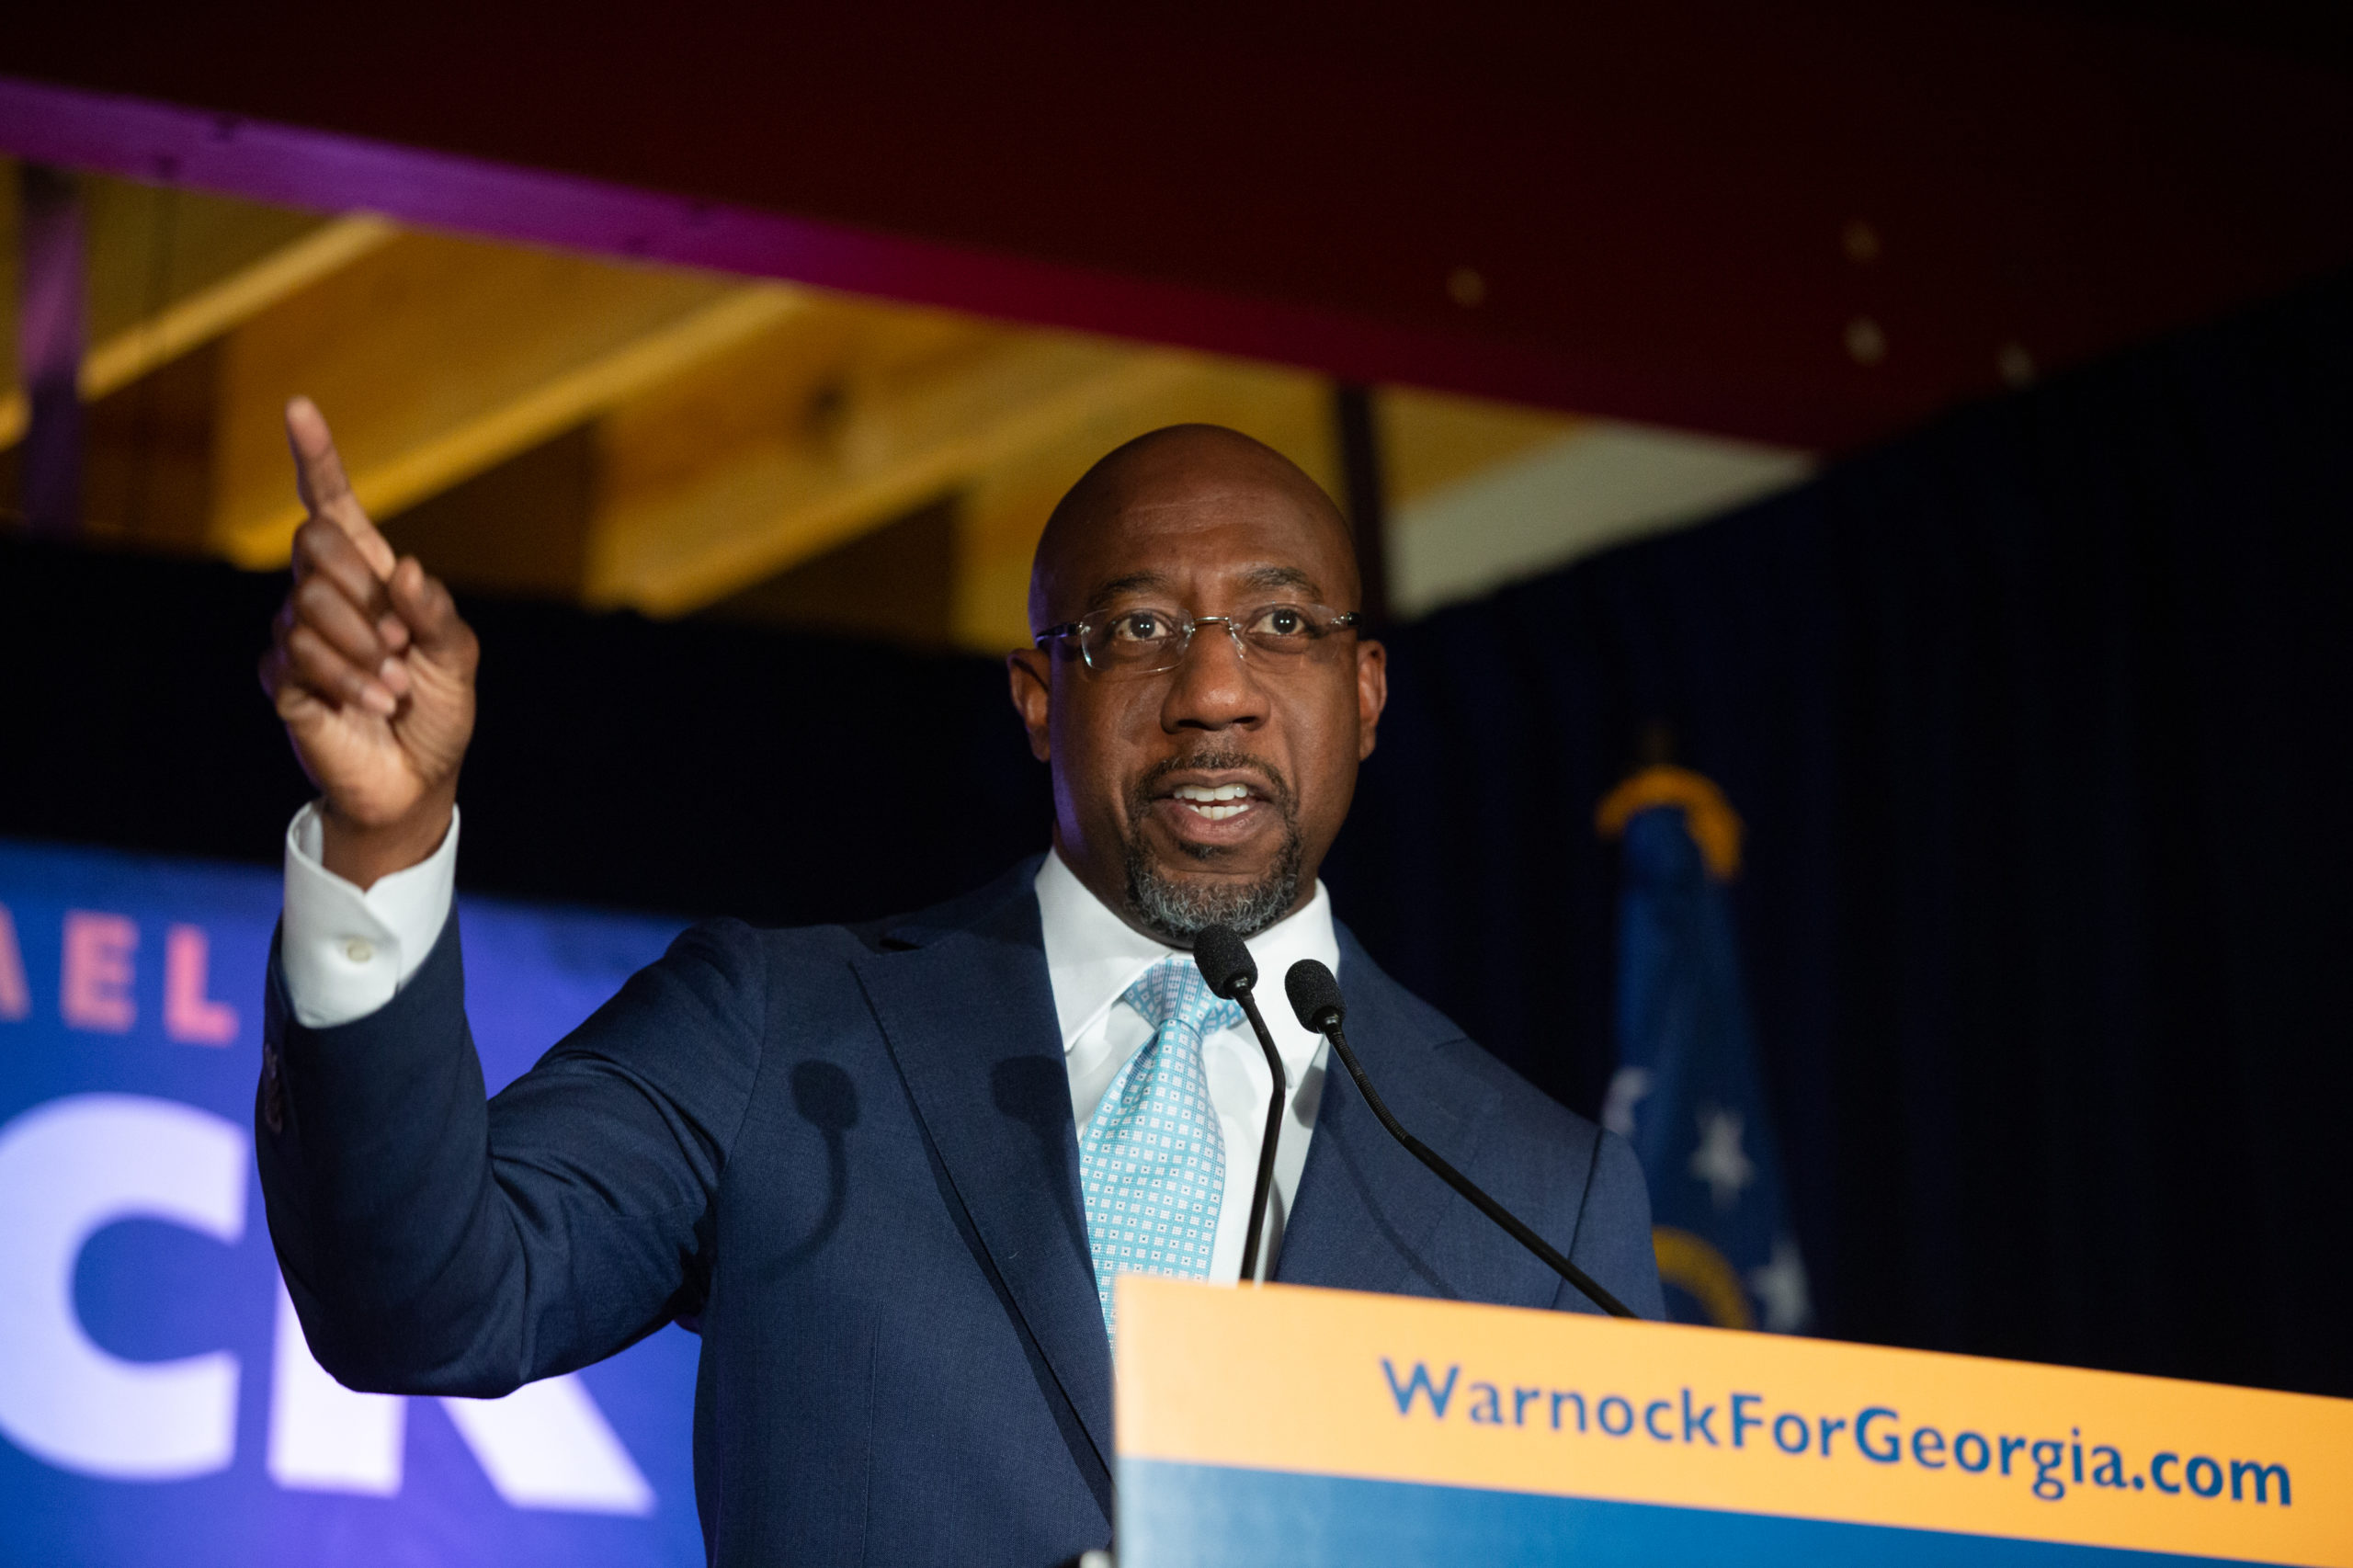 ATLANTA, GA - NOVEMBER 03: Democratic U.S. Senate candidate Rev. Raphael Warnock speaks during an Election Night event on November 3, 2020 in Atlanta, Georgia. Democratic Senate candidate Rev. Raphael Warnock is running in a special election against a crowded field, including U.S. Sen. Kelly Loeffler (R-GA), who was appointed by Gov. Brian Kemp to replace Johnny Isakson at the end of last year. Georgia is the only state with two Senate seats on the November 3 ballot. (Photo by Jessica McGowan/Getty Images)